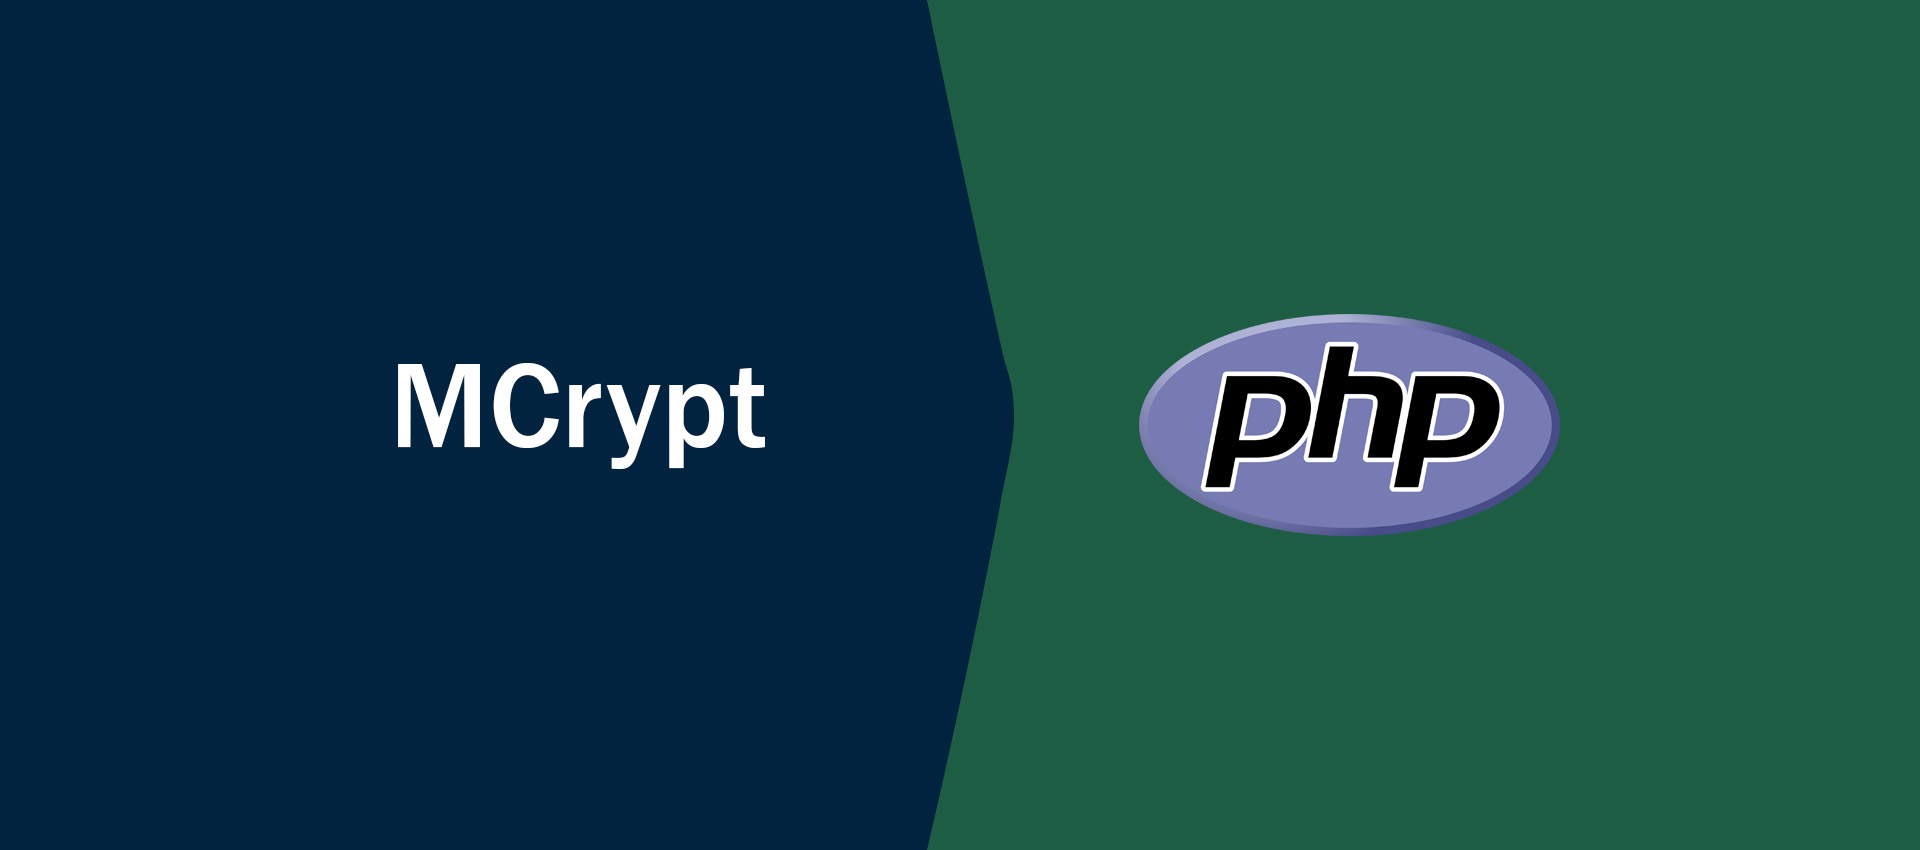 How To Install MCrypt For PHP 7 On Ubuntu 20.04 LTS